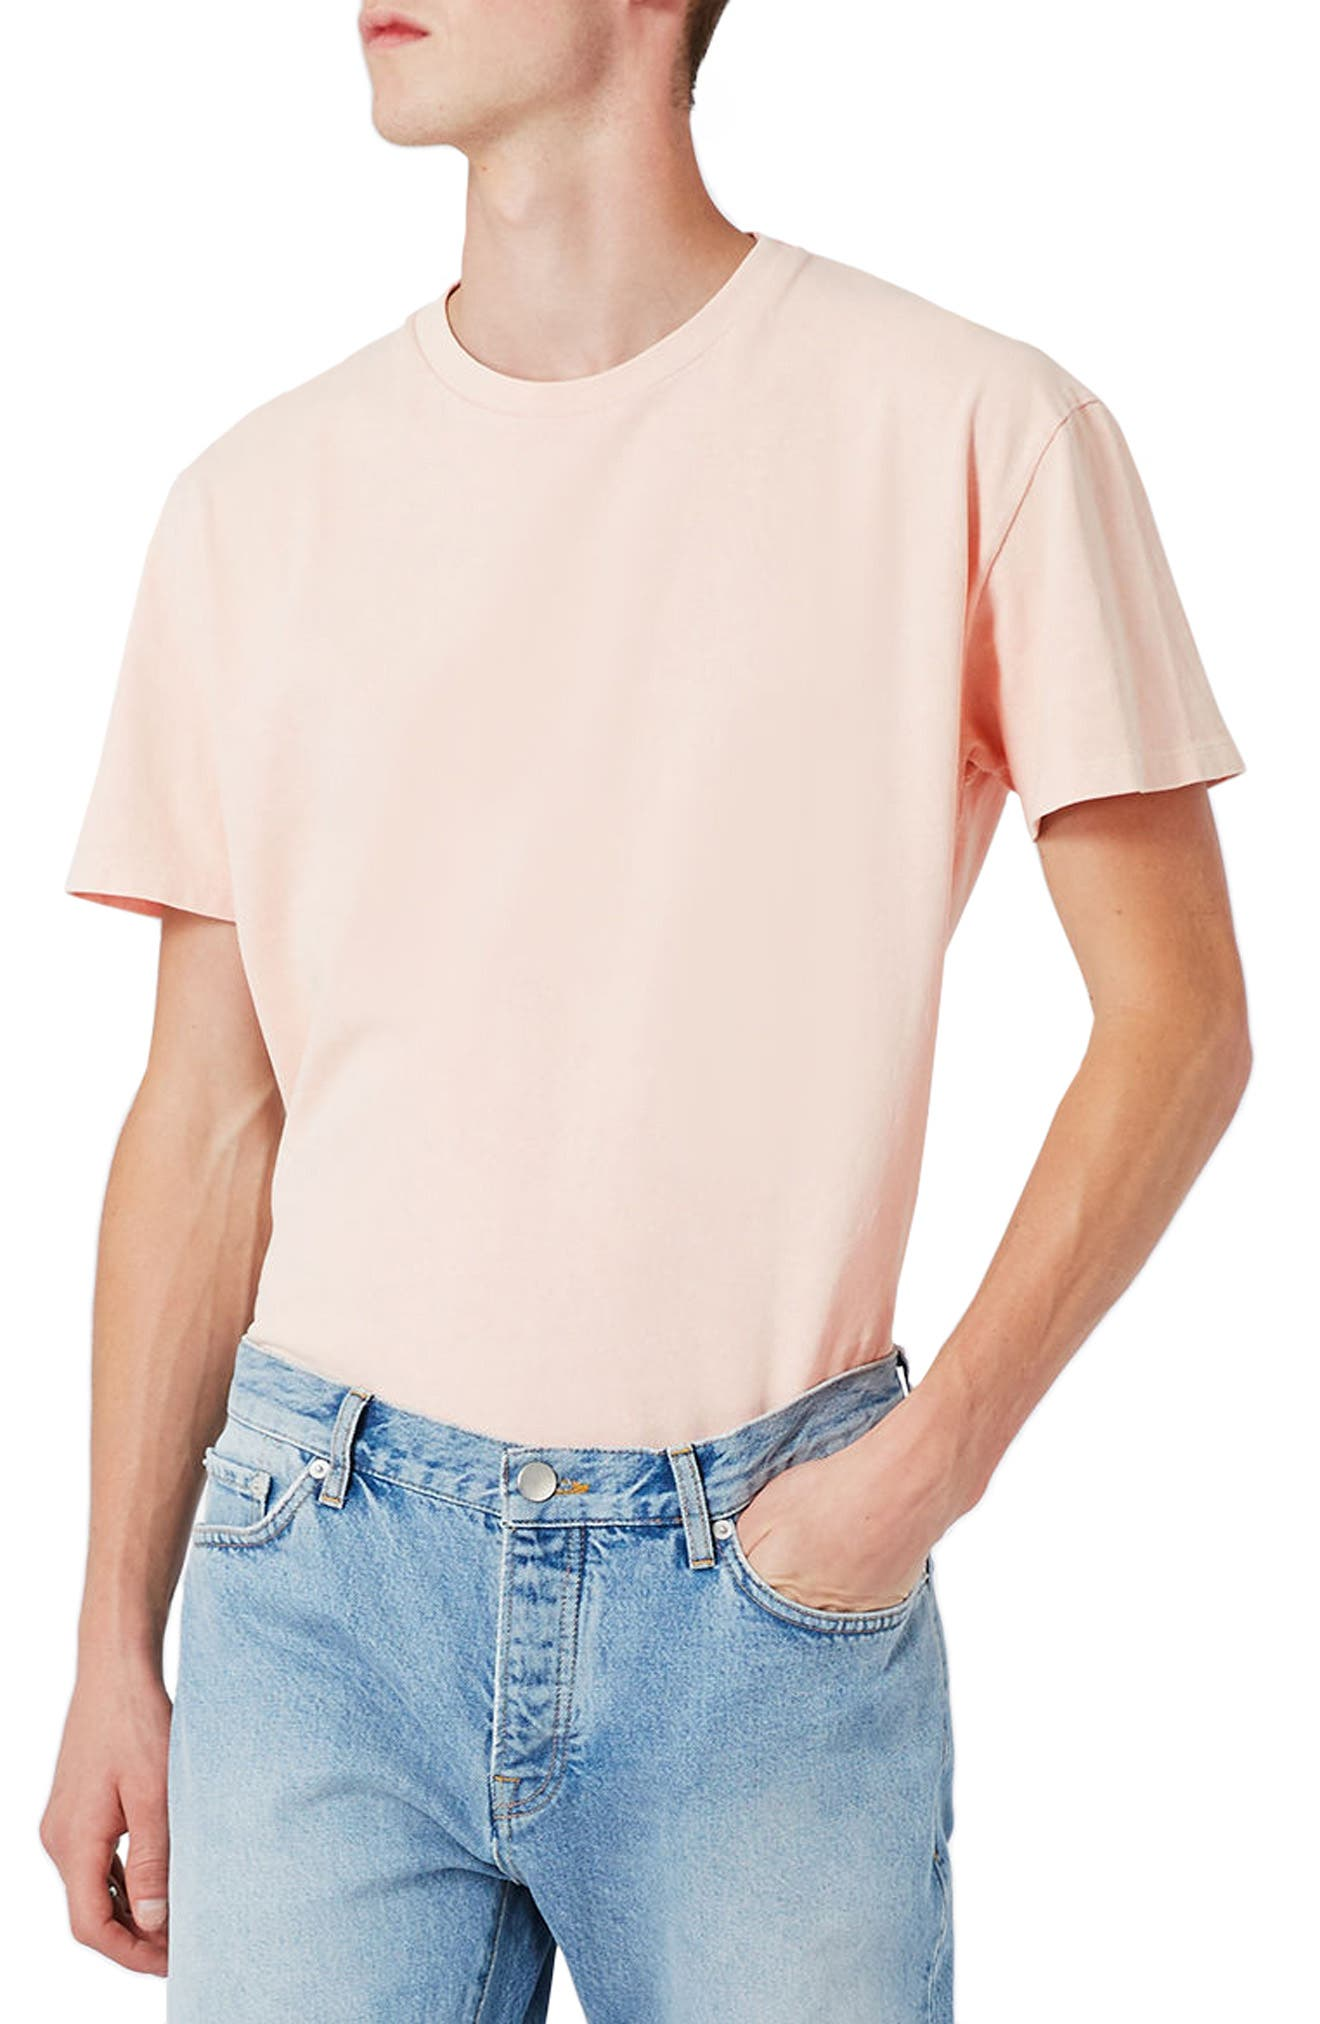 Topman LTD Collection Washed T-Shirt